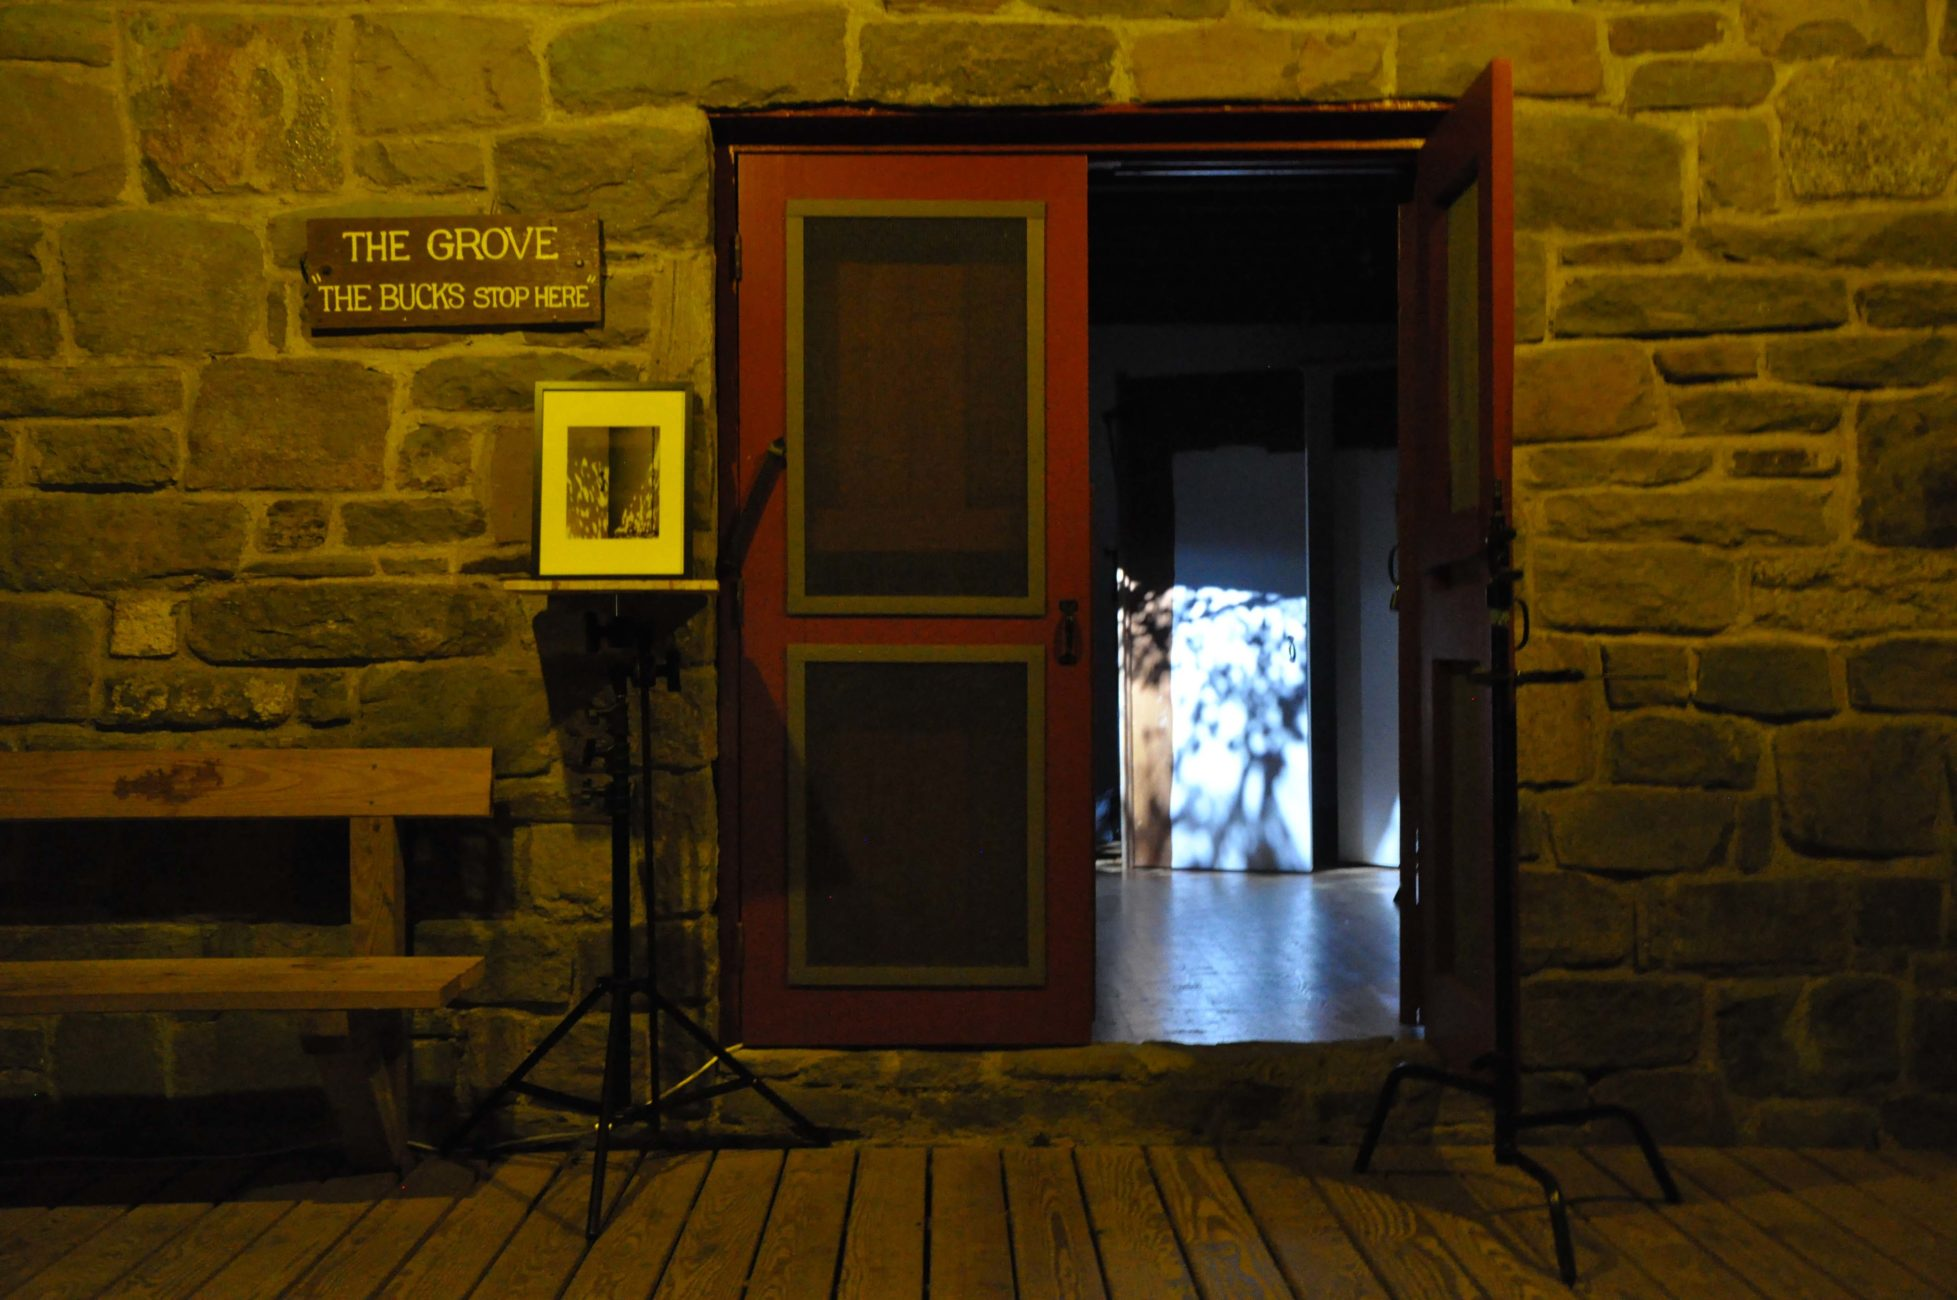 The exterior of a stone building with the red doors ajar. To the left of the doors is a small photograph of the same building but from the 1940s, photographed with light shining through leaves onto the white doors that were one there. Inside the building, seen through the open door, is a replica of that photograph with white painted wooden doors and projected images of dappled light.